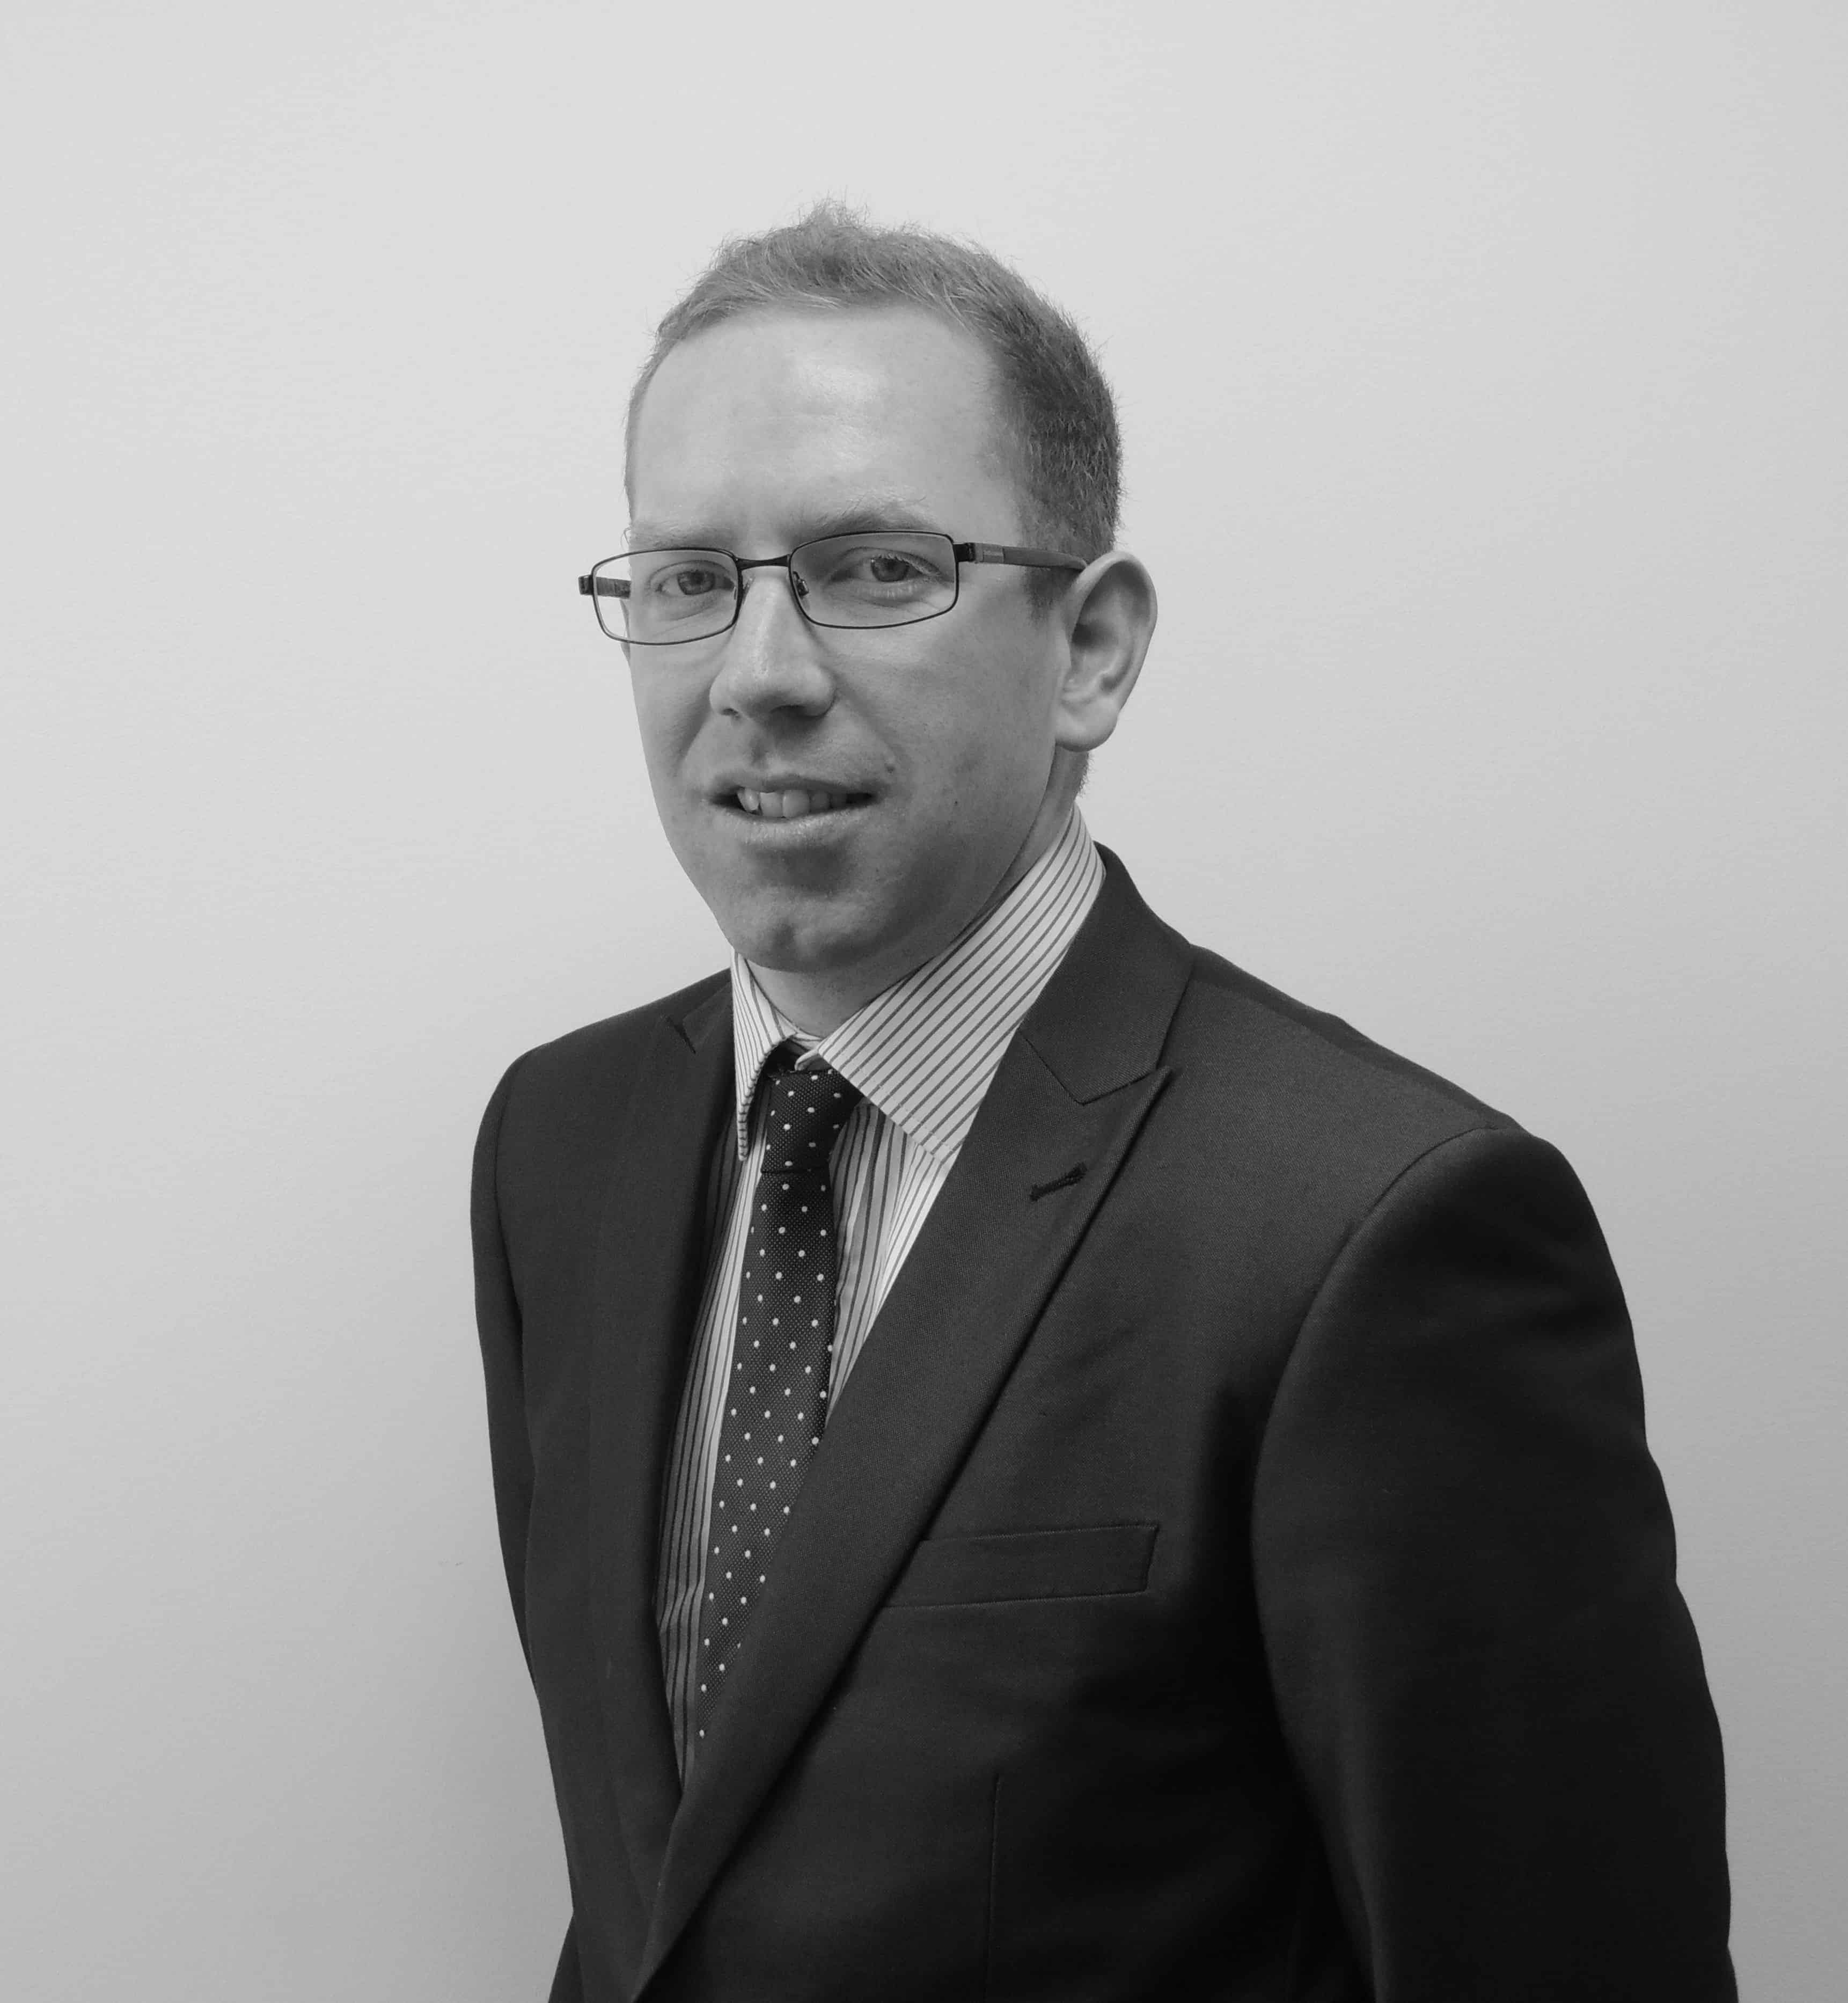 Photo of Chris Lock, Accountant at Aston Shaw